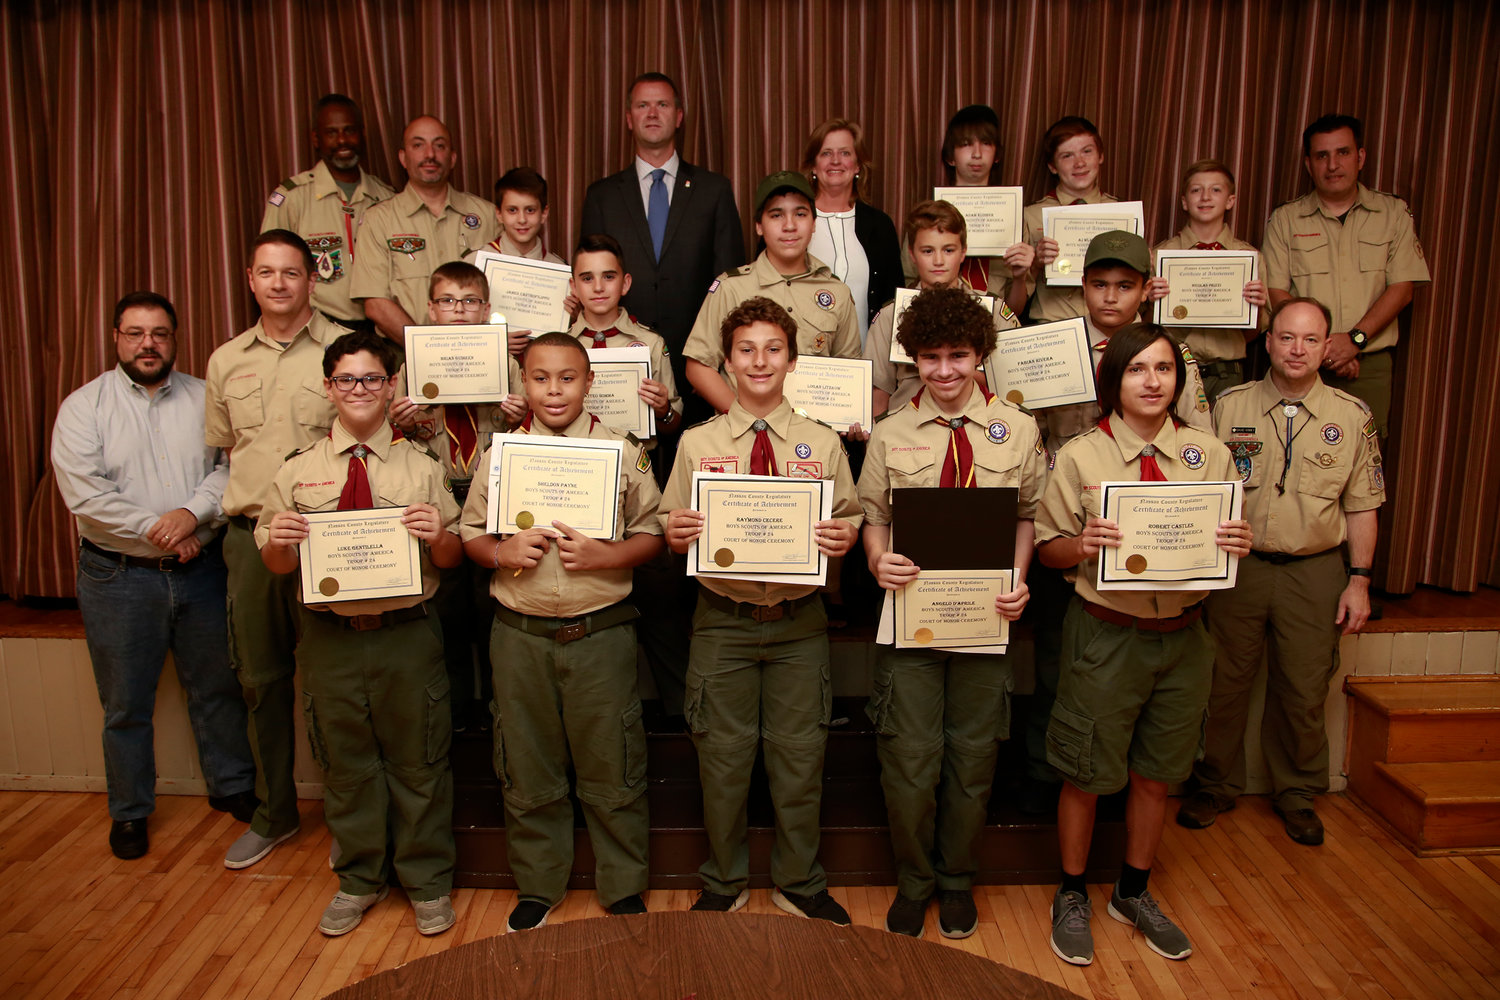 Boy Scout Troop 24 members received citations during its Court of Honor ceremony at Our Lady of Lourdes Church.